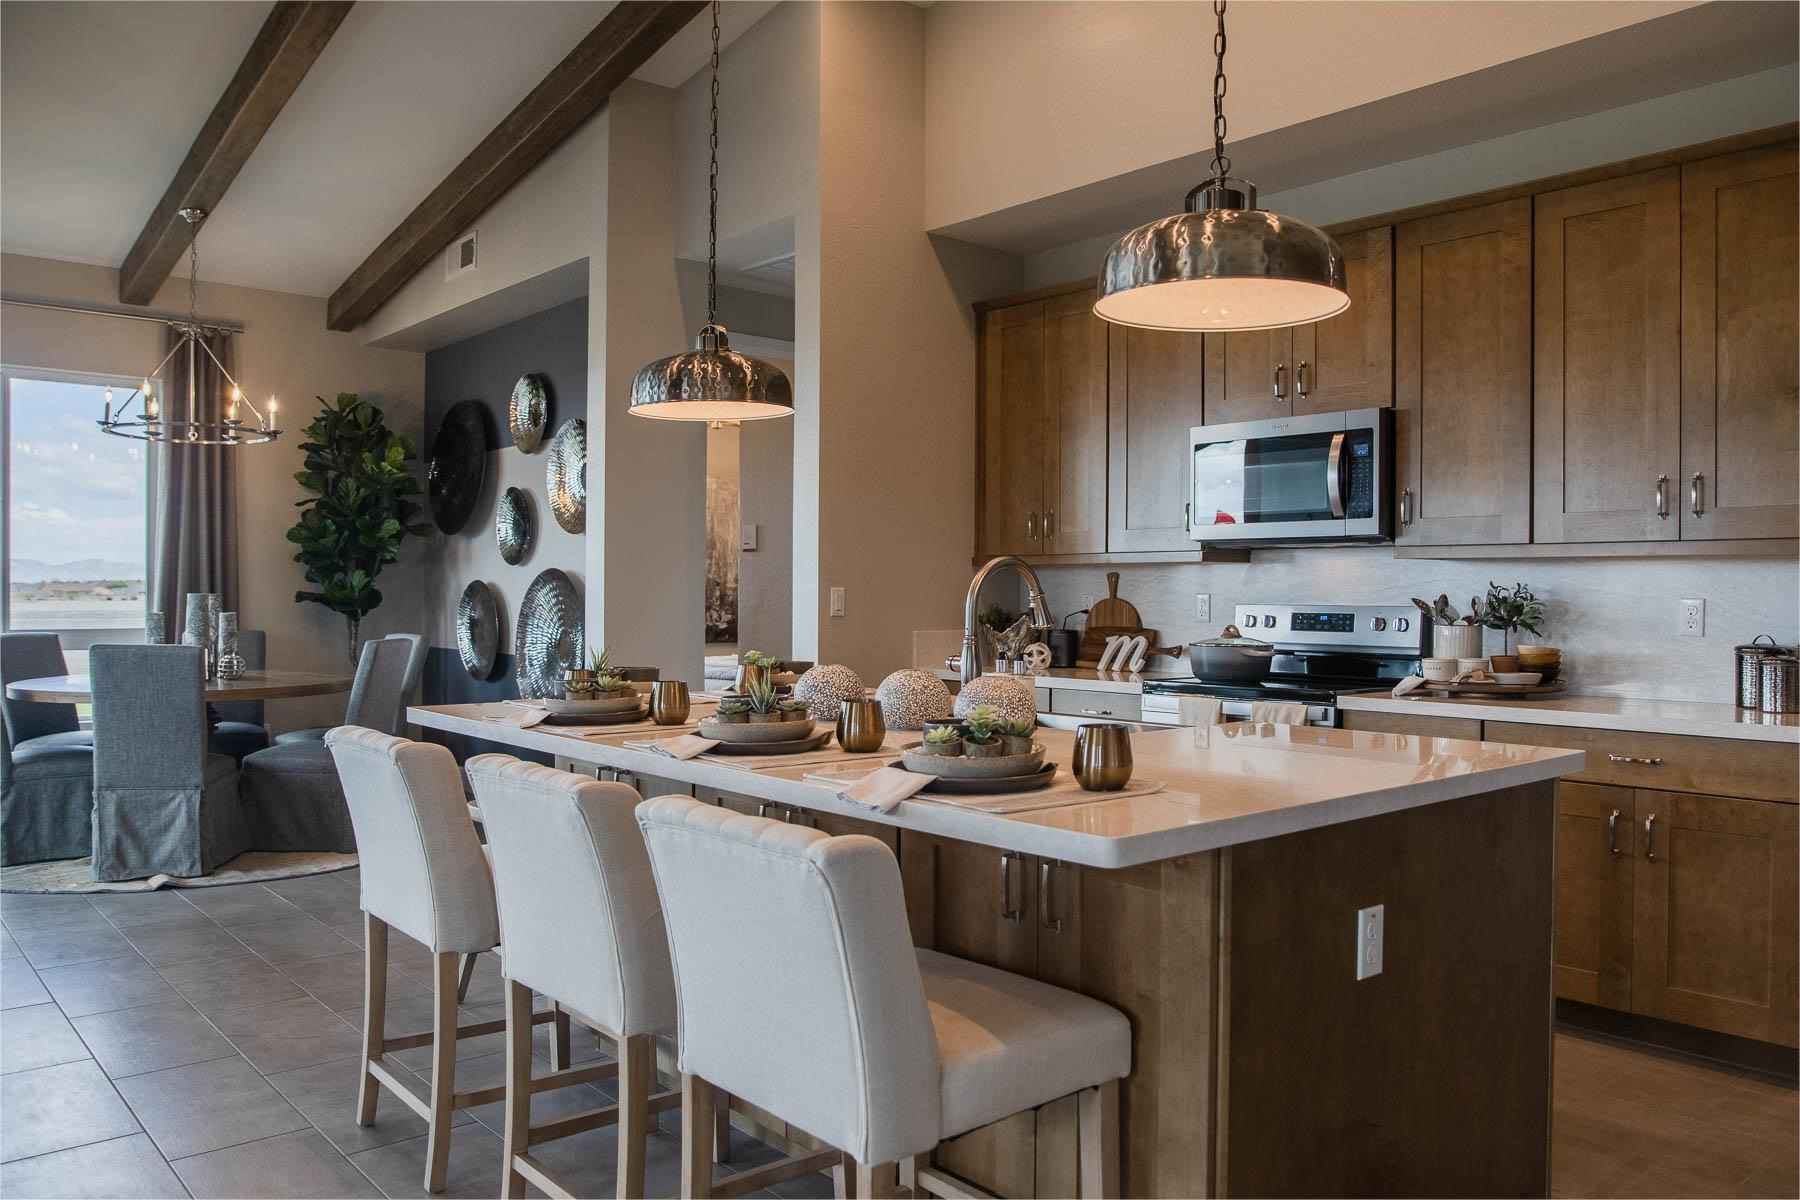 Kitchen featured in the J603 By Mandalay Homes in Prescott, AZ